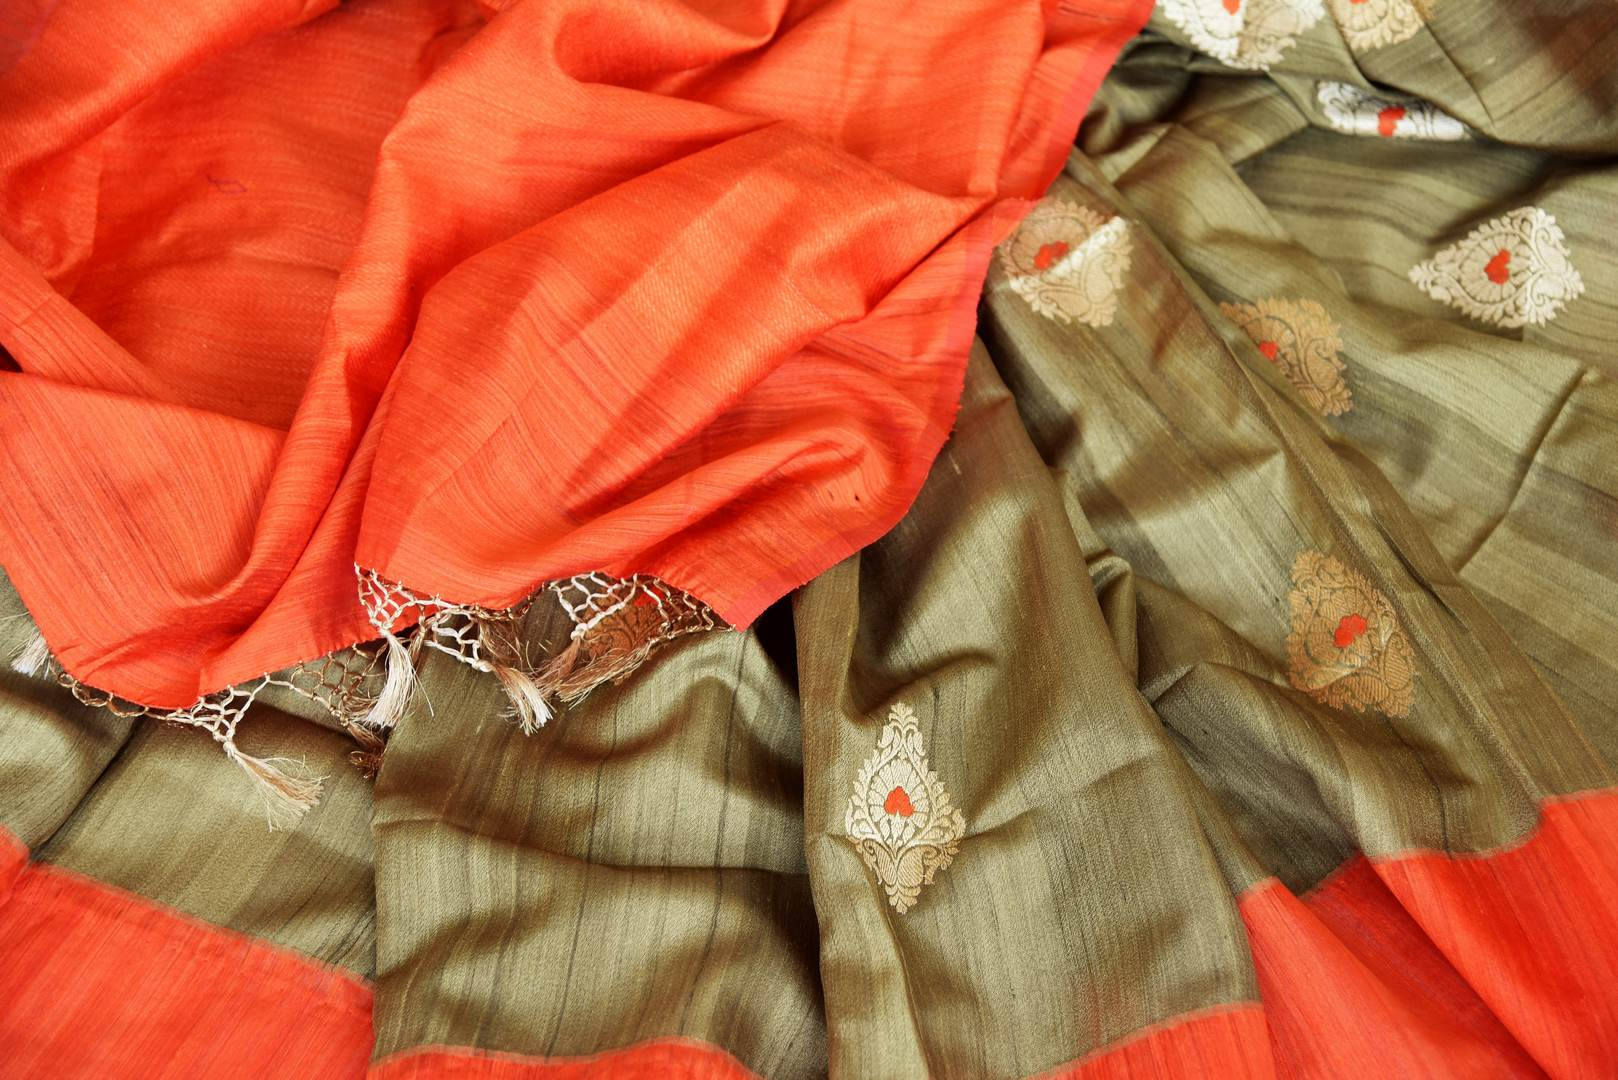 Shop olive green tussar Benarasi saree online in USA with red border and zari buta. Keep your wardrobe update with latest Indian handwoven saris from Pure Elegance Indian fashion store in USA. Shop beautiful Benarasi sarees, pure silk sarees, Kanchipuram sarees for Indian women in USA from our online store.-details